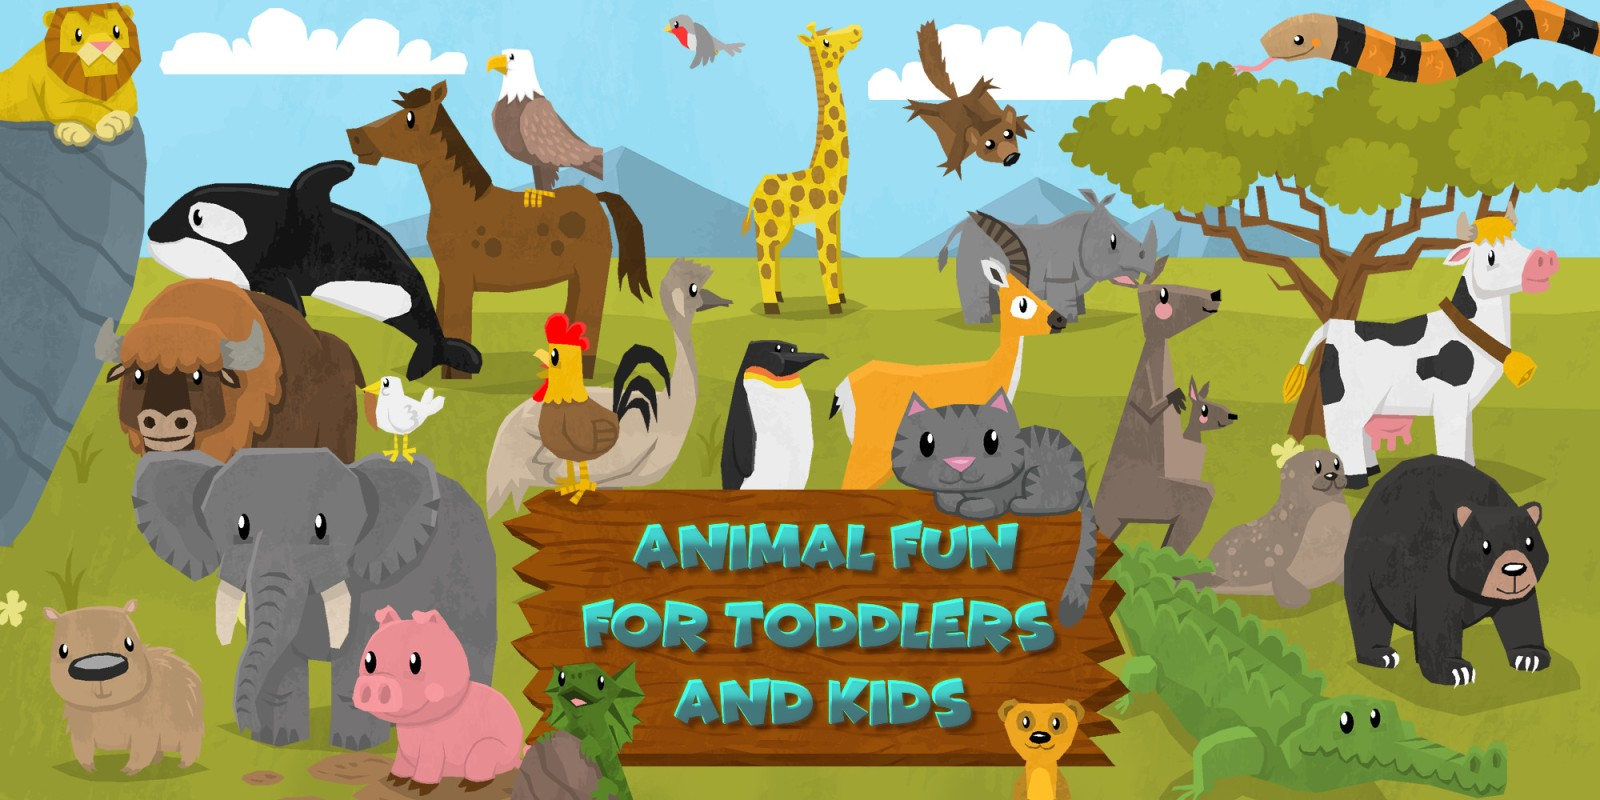 Animal Fun for Toddlers and Kids